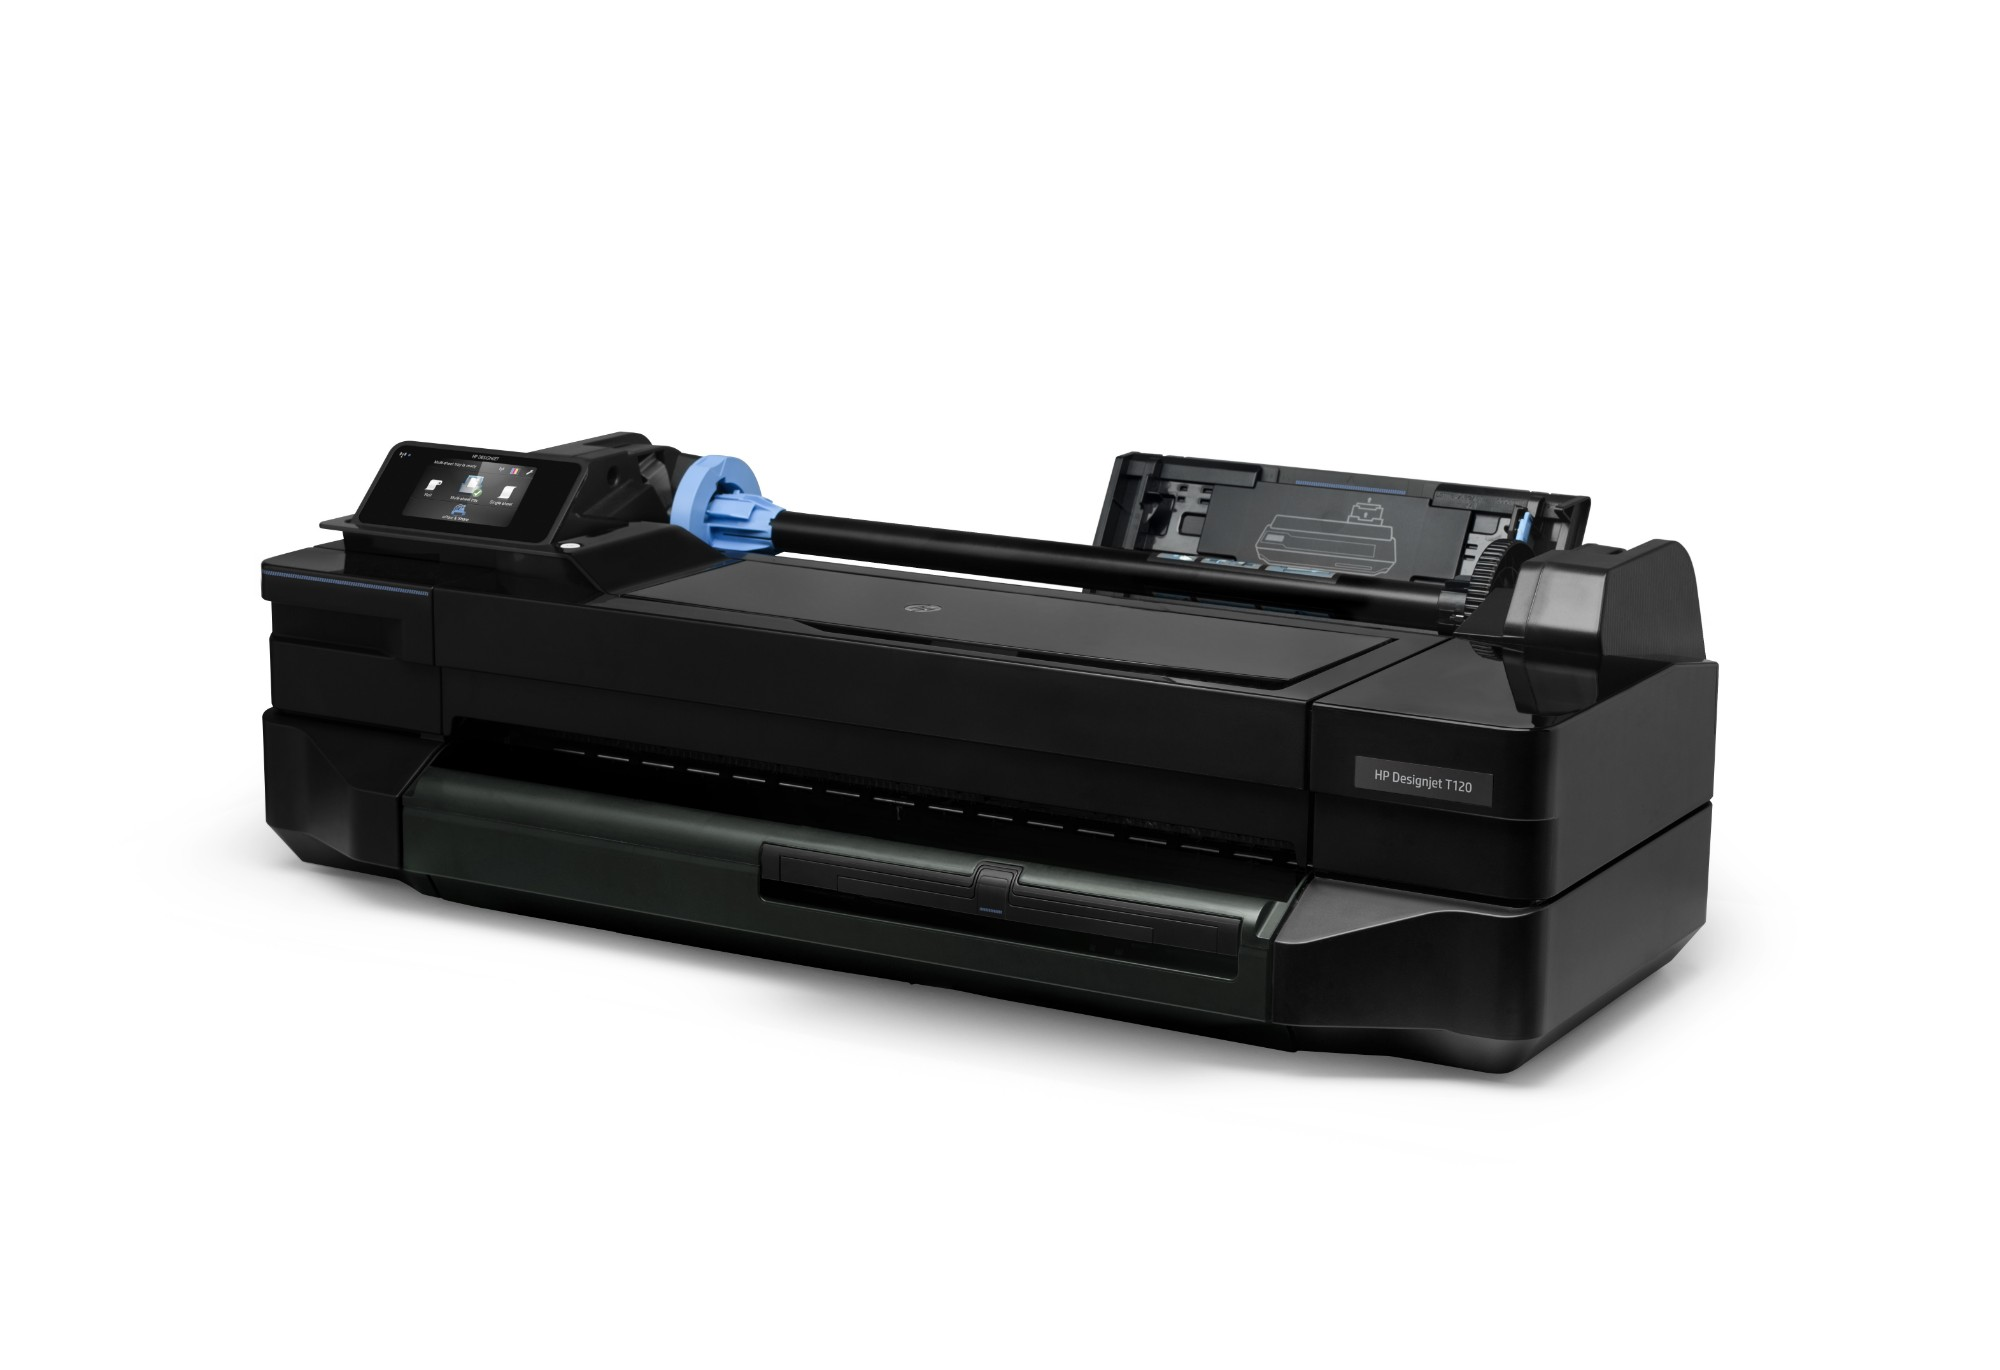 Hp designjet t120 610mm eprinter eurieka hp designjet t120 610mm eprinter fandeluxe Gallery